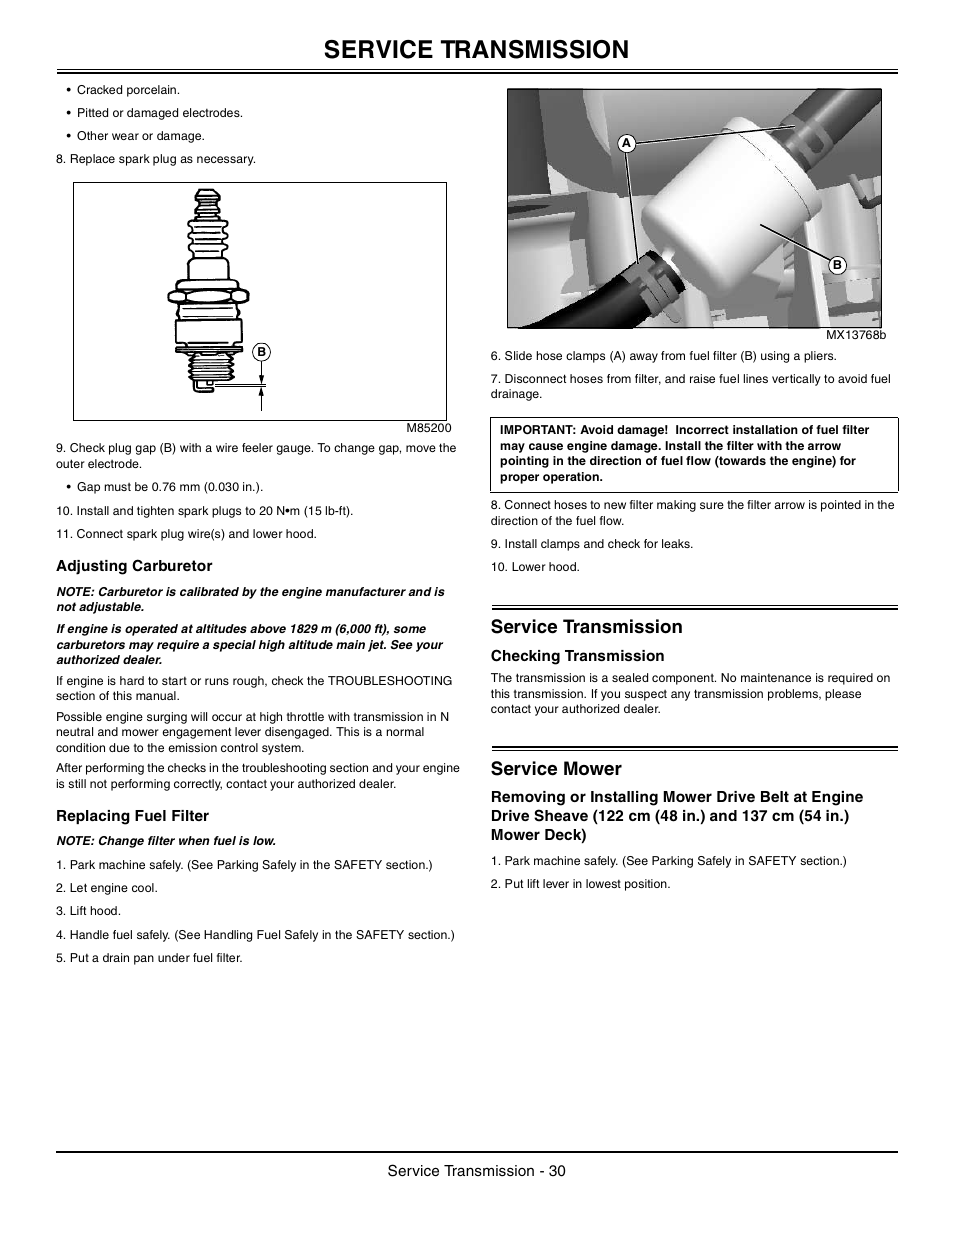 Adjusting Carburetor Replacing Fuel Filter Service Transmission S 10 John Deere La105 User Manual Page 31 52